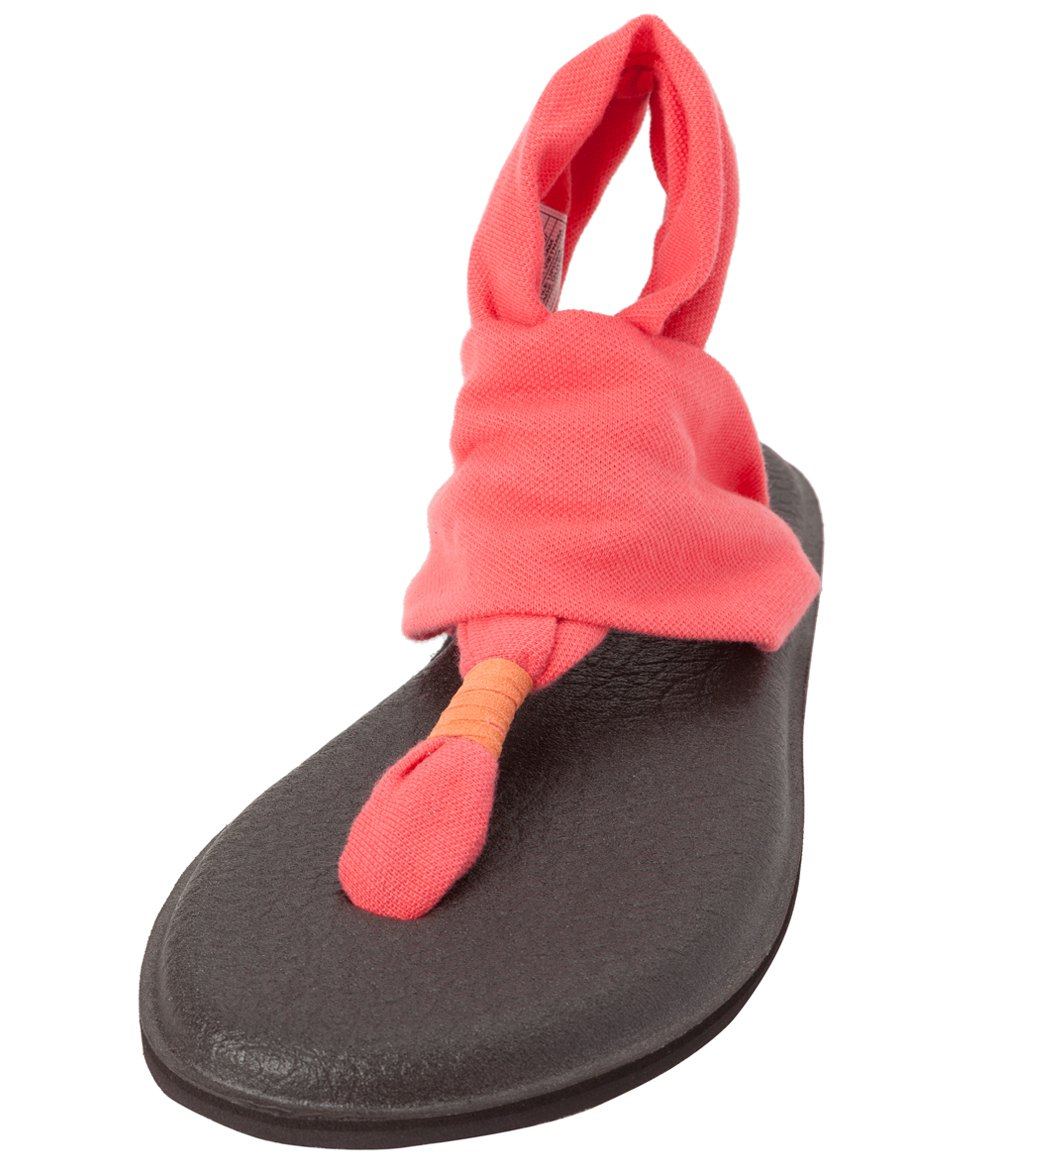 34a74583e3a9 Sanuk Women s Yoga Sling 2 Sandal at SwimOutlet.com